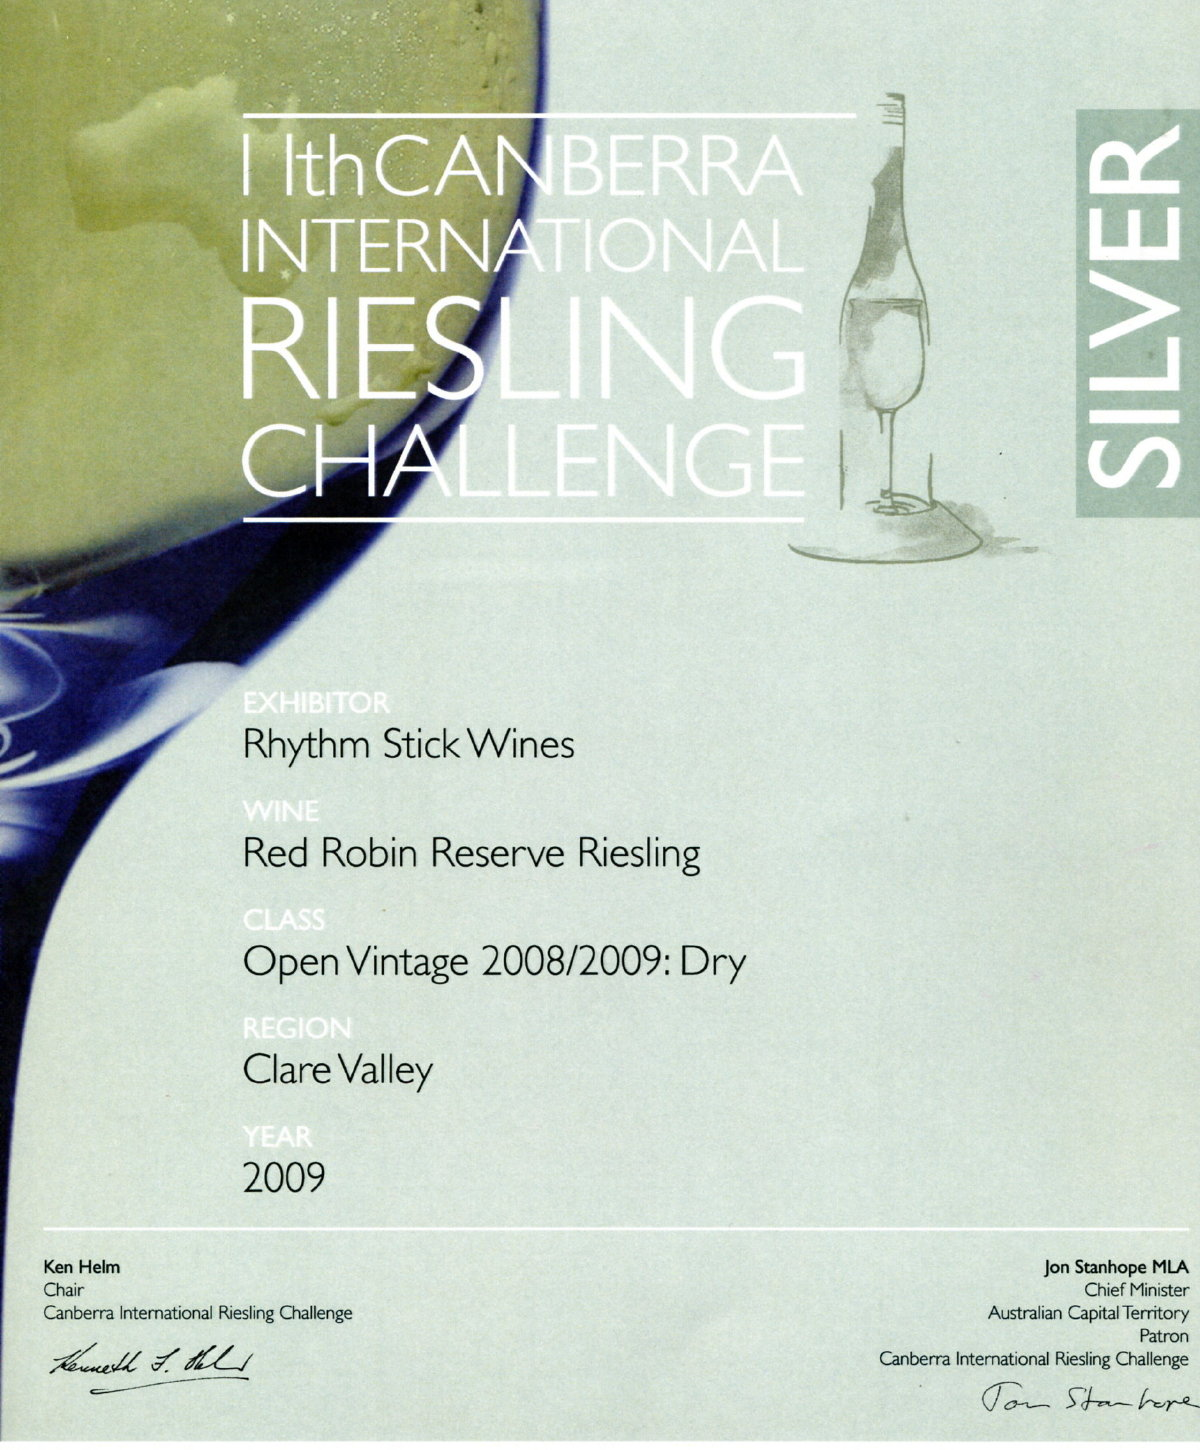 2009 Canberra International Riesling Challenge